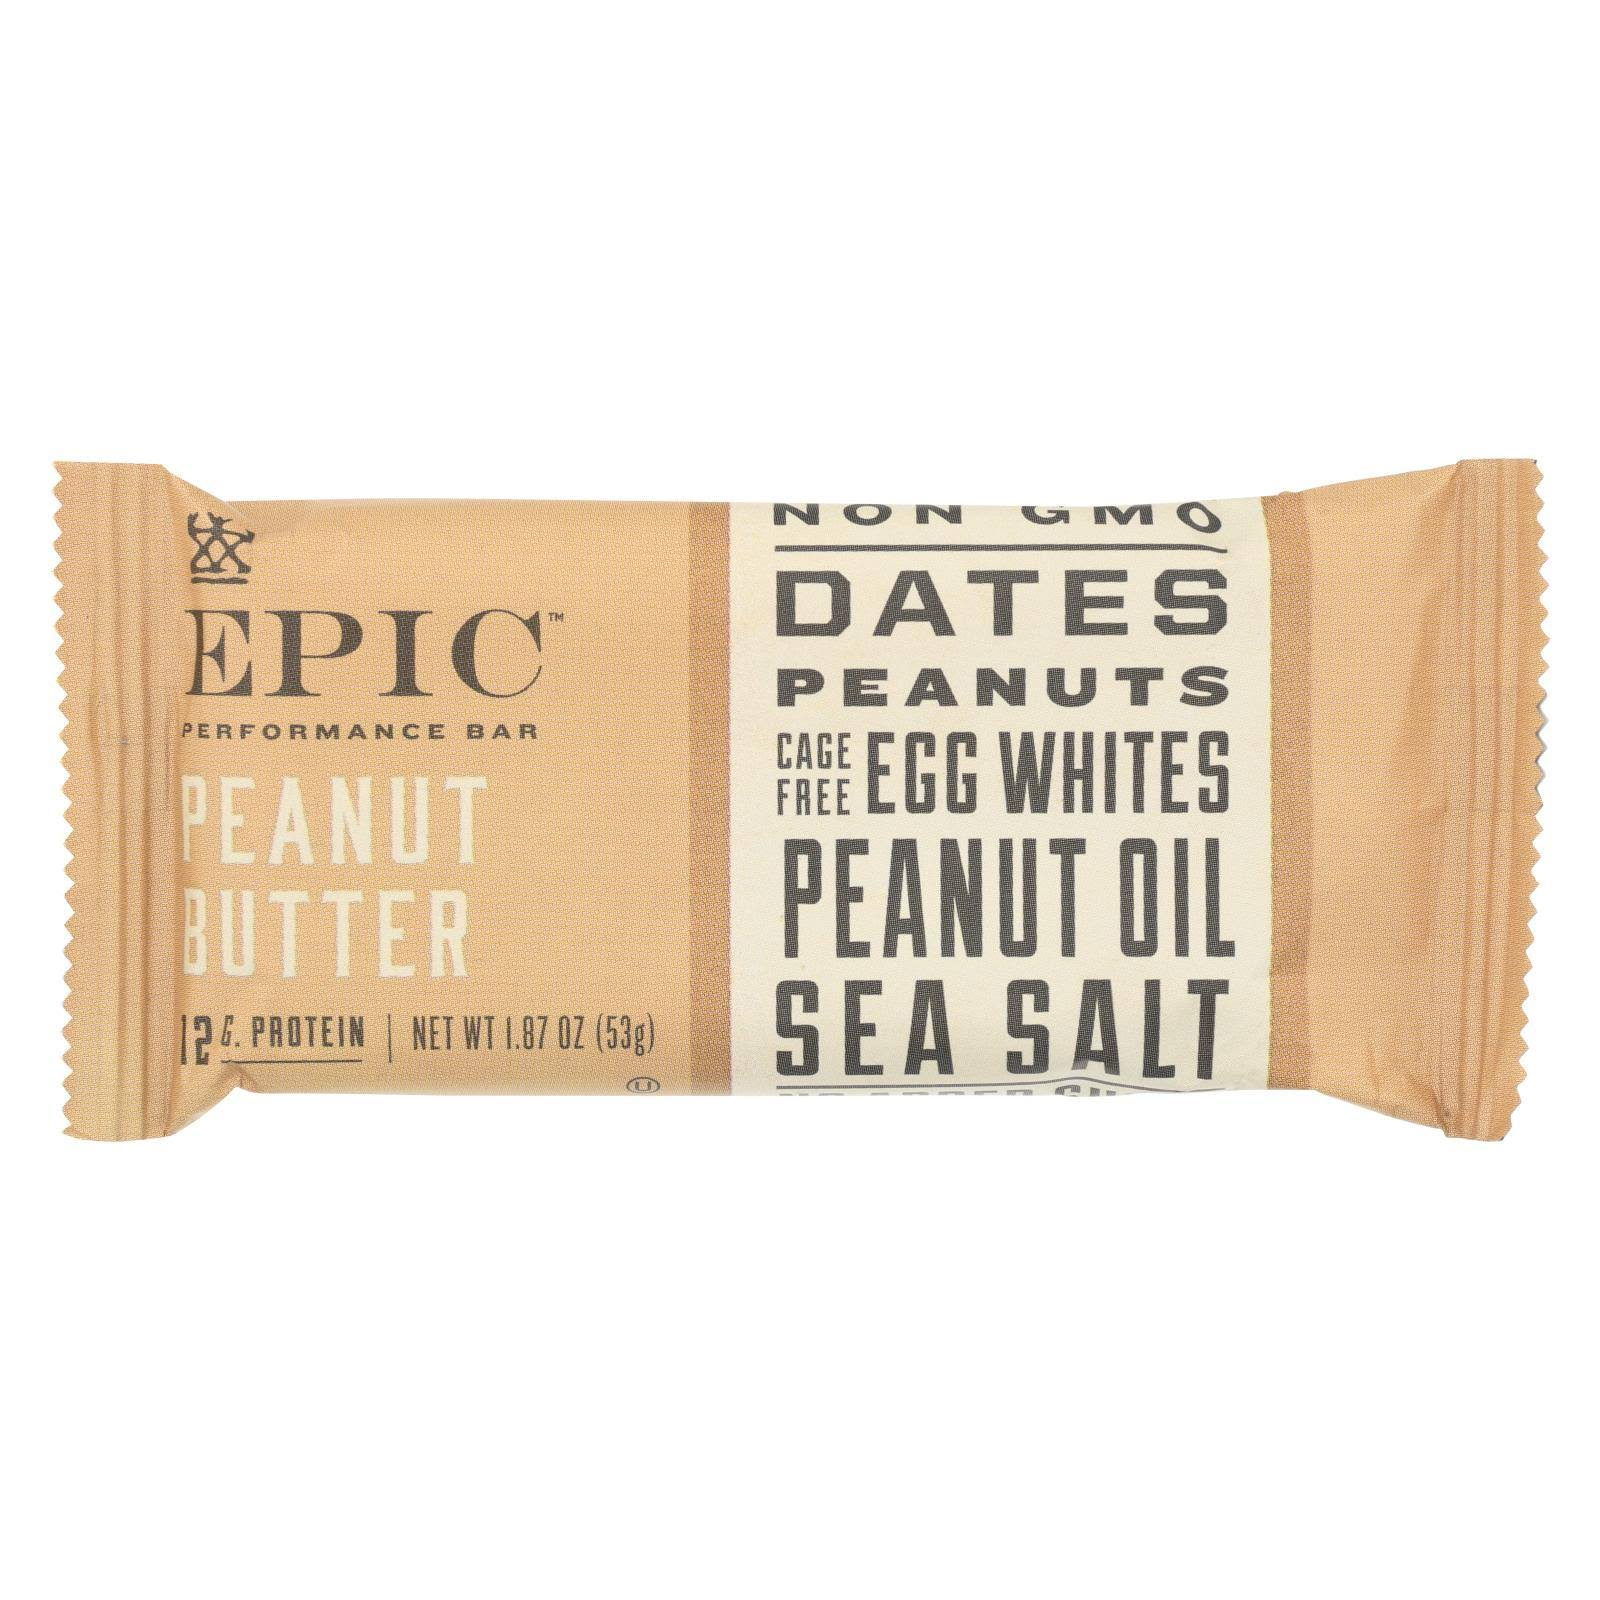 Epic Bar, Peanut Butter - 1.87 oz